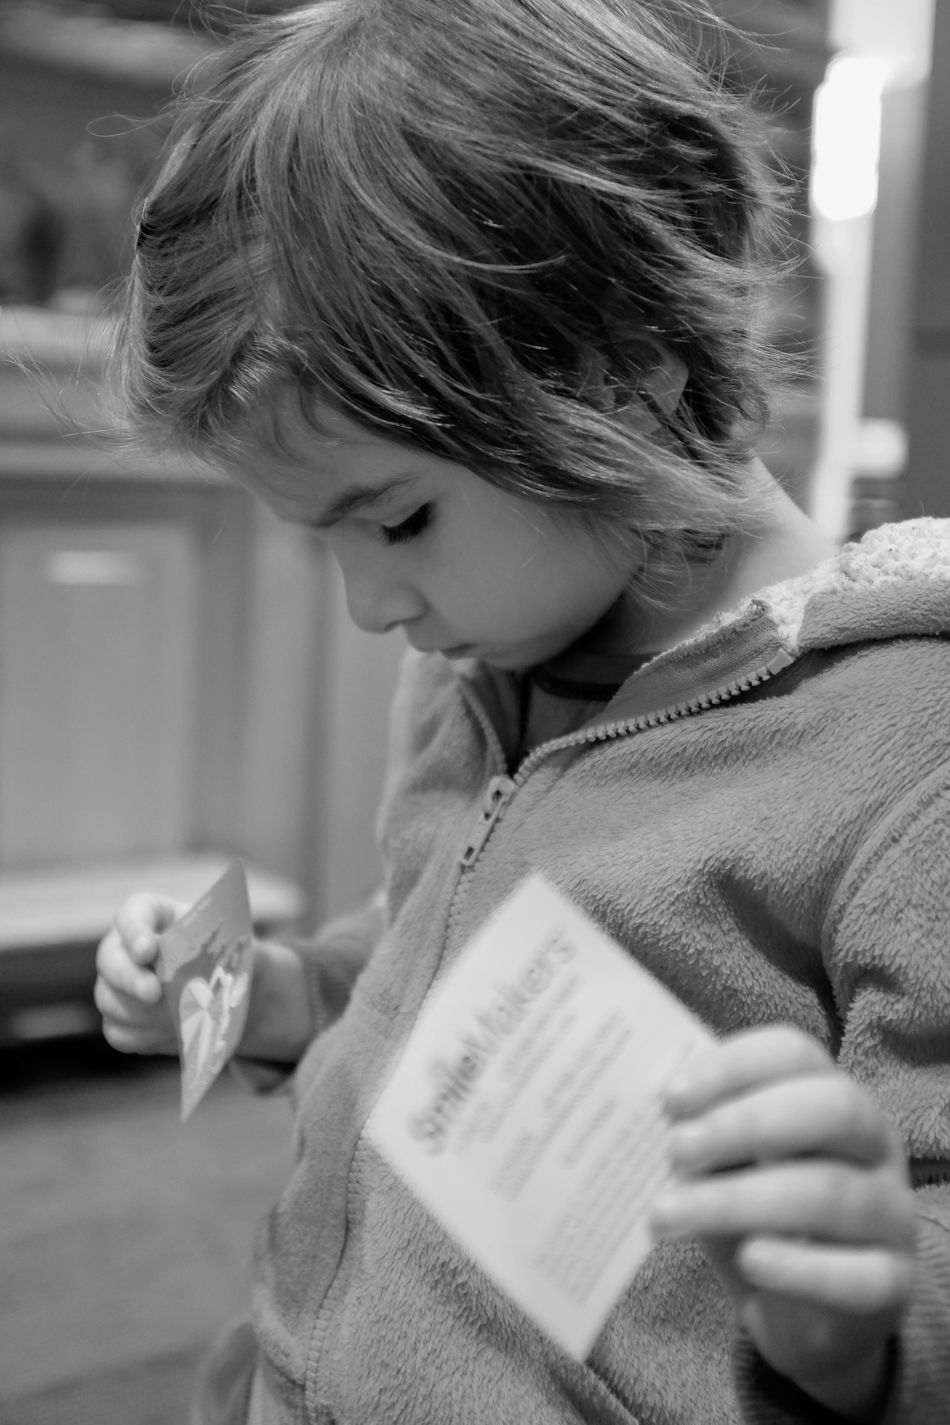 Visual journal - Crete, Nebraska November 2016 A Day In The Life B&W Portrait Camera Work Candid Photography Child Close-up Daughter Everyday Lives Feeling Sick Hospital Kids Being Kids One Person Photo Diary Photo Essay Preschool Age Stickers Visual Journal